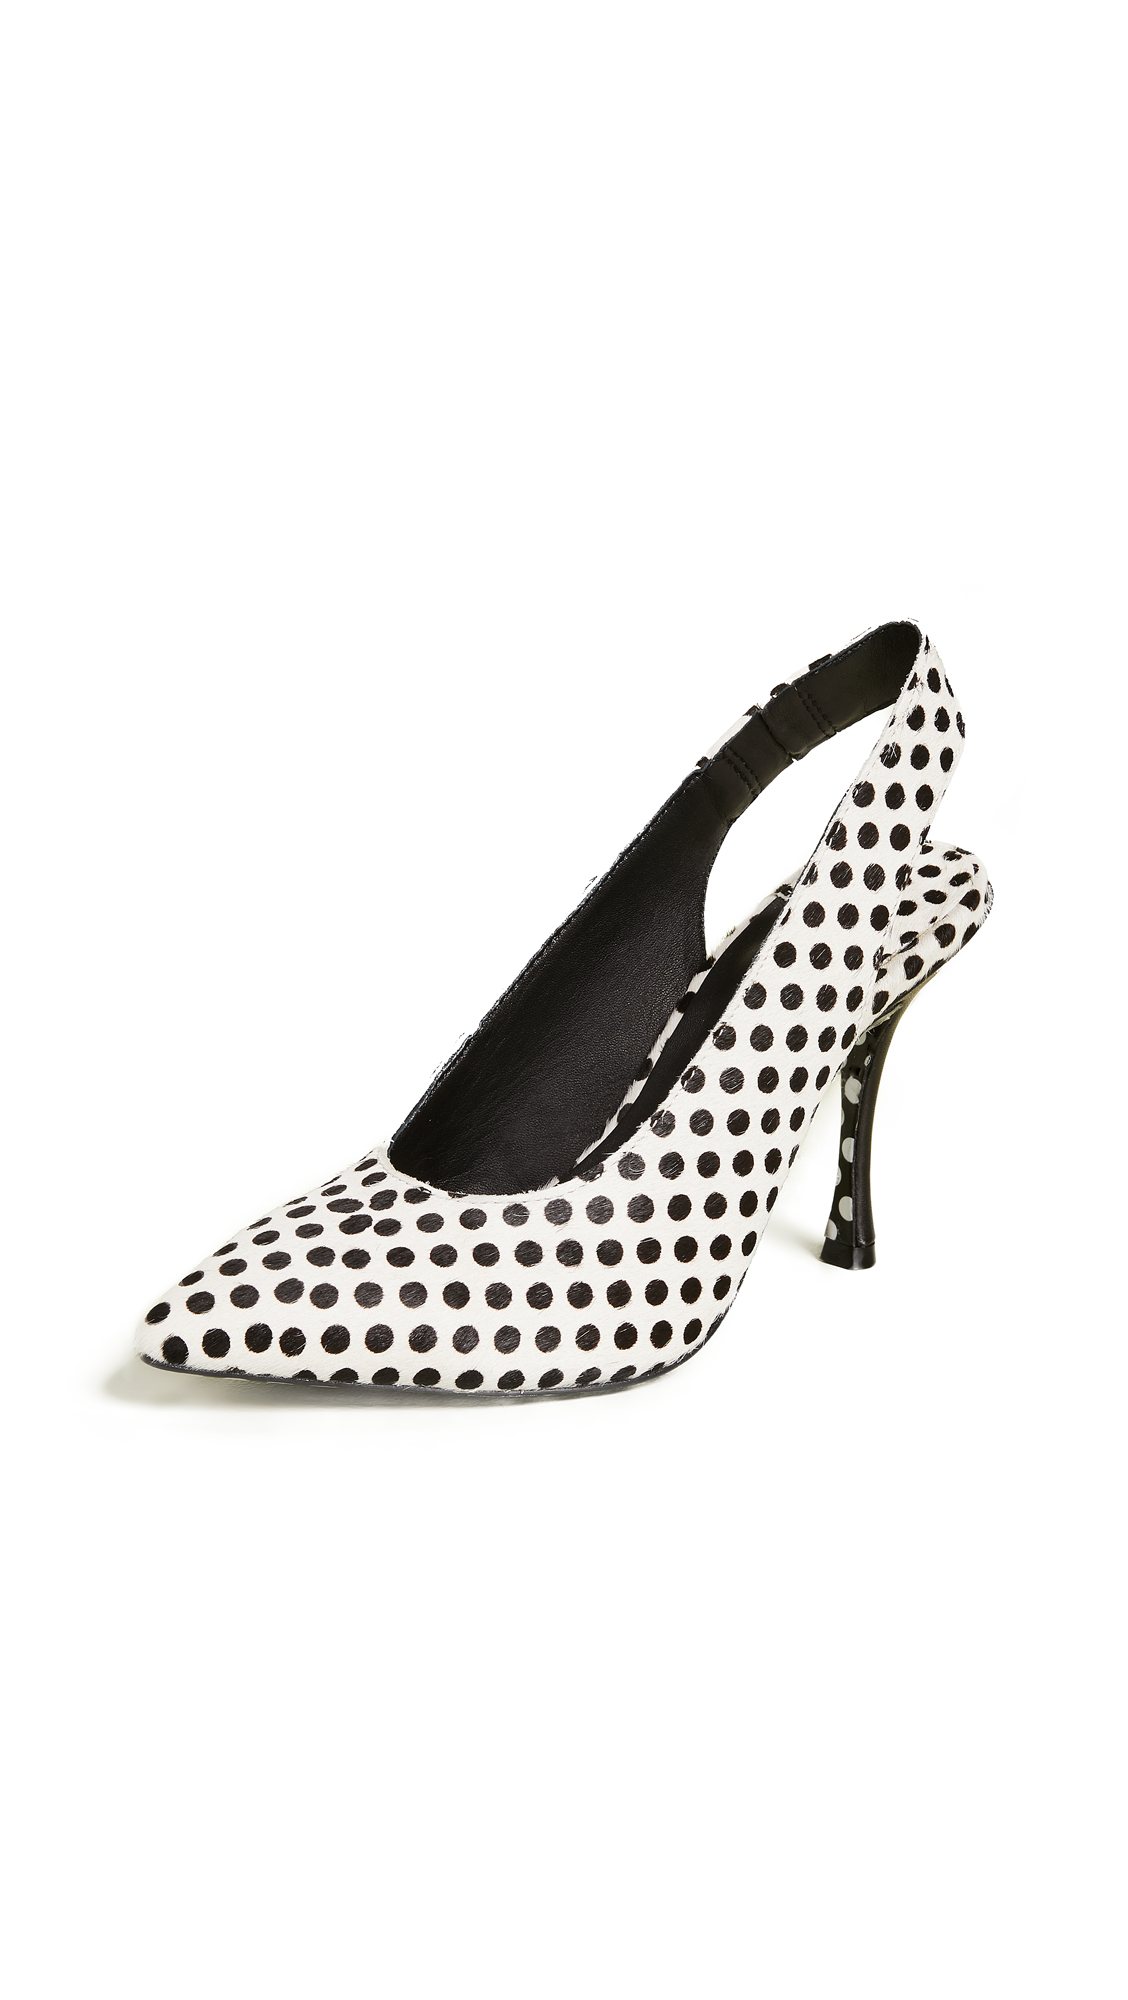 alice + olivia Innet Slingback Pumps - Black/White